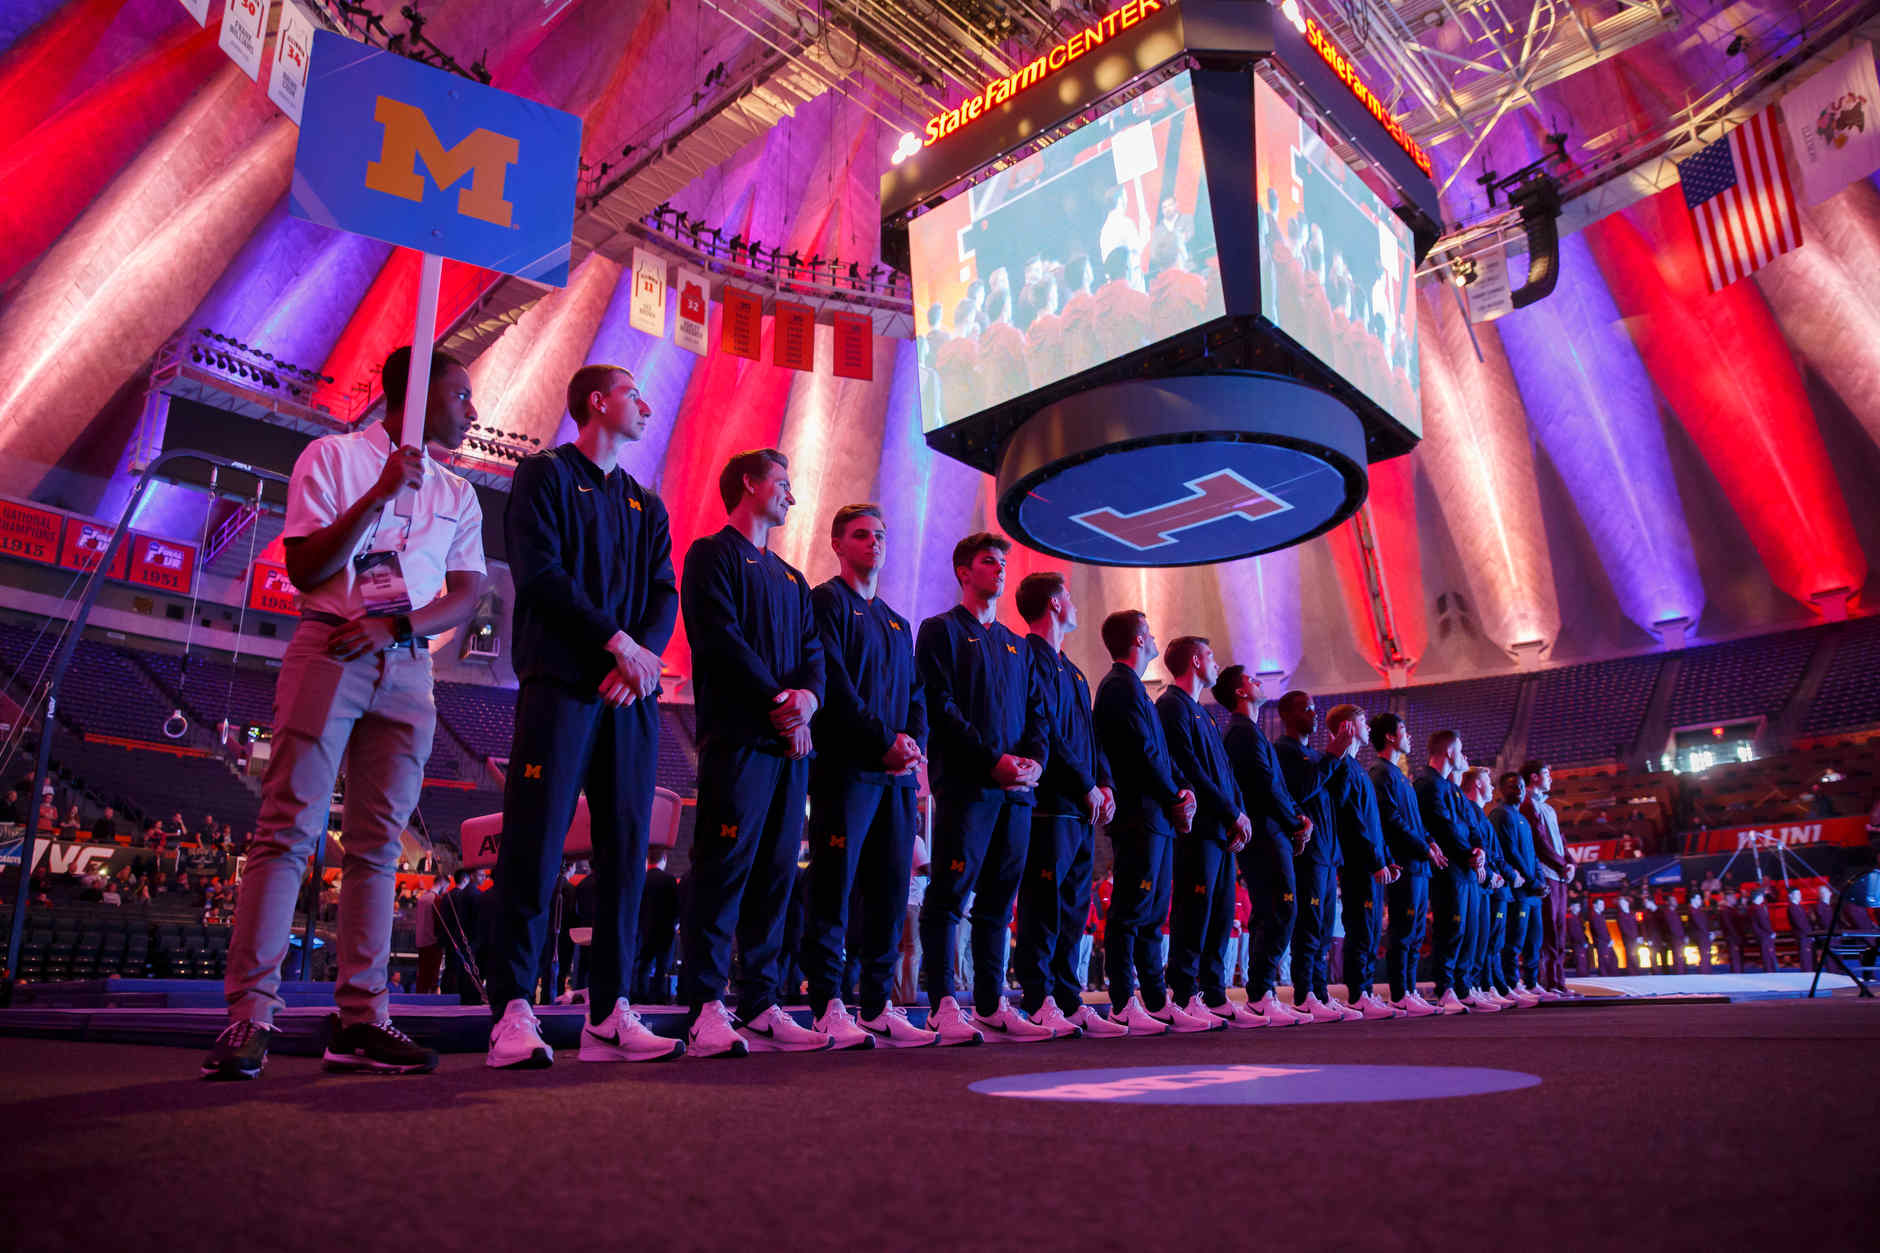 Michigan gymnasts stand for the National Anthem at the NCAA Men's Gymnastics Championships on Friday, April 19, 2019, at the State Farm Center in Champaign, Illinois. (Photo by James Brosher)